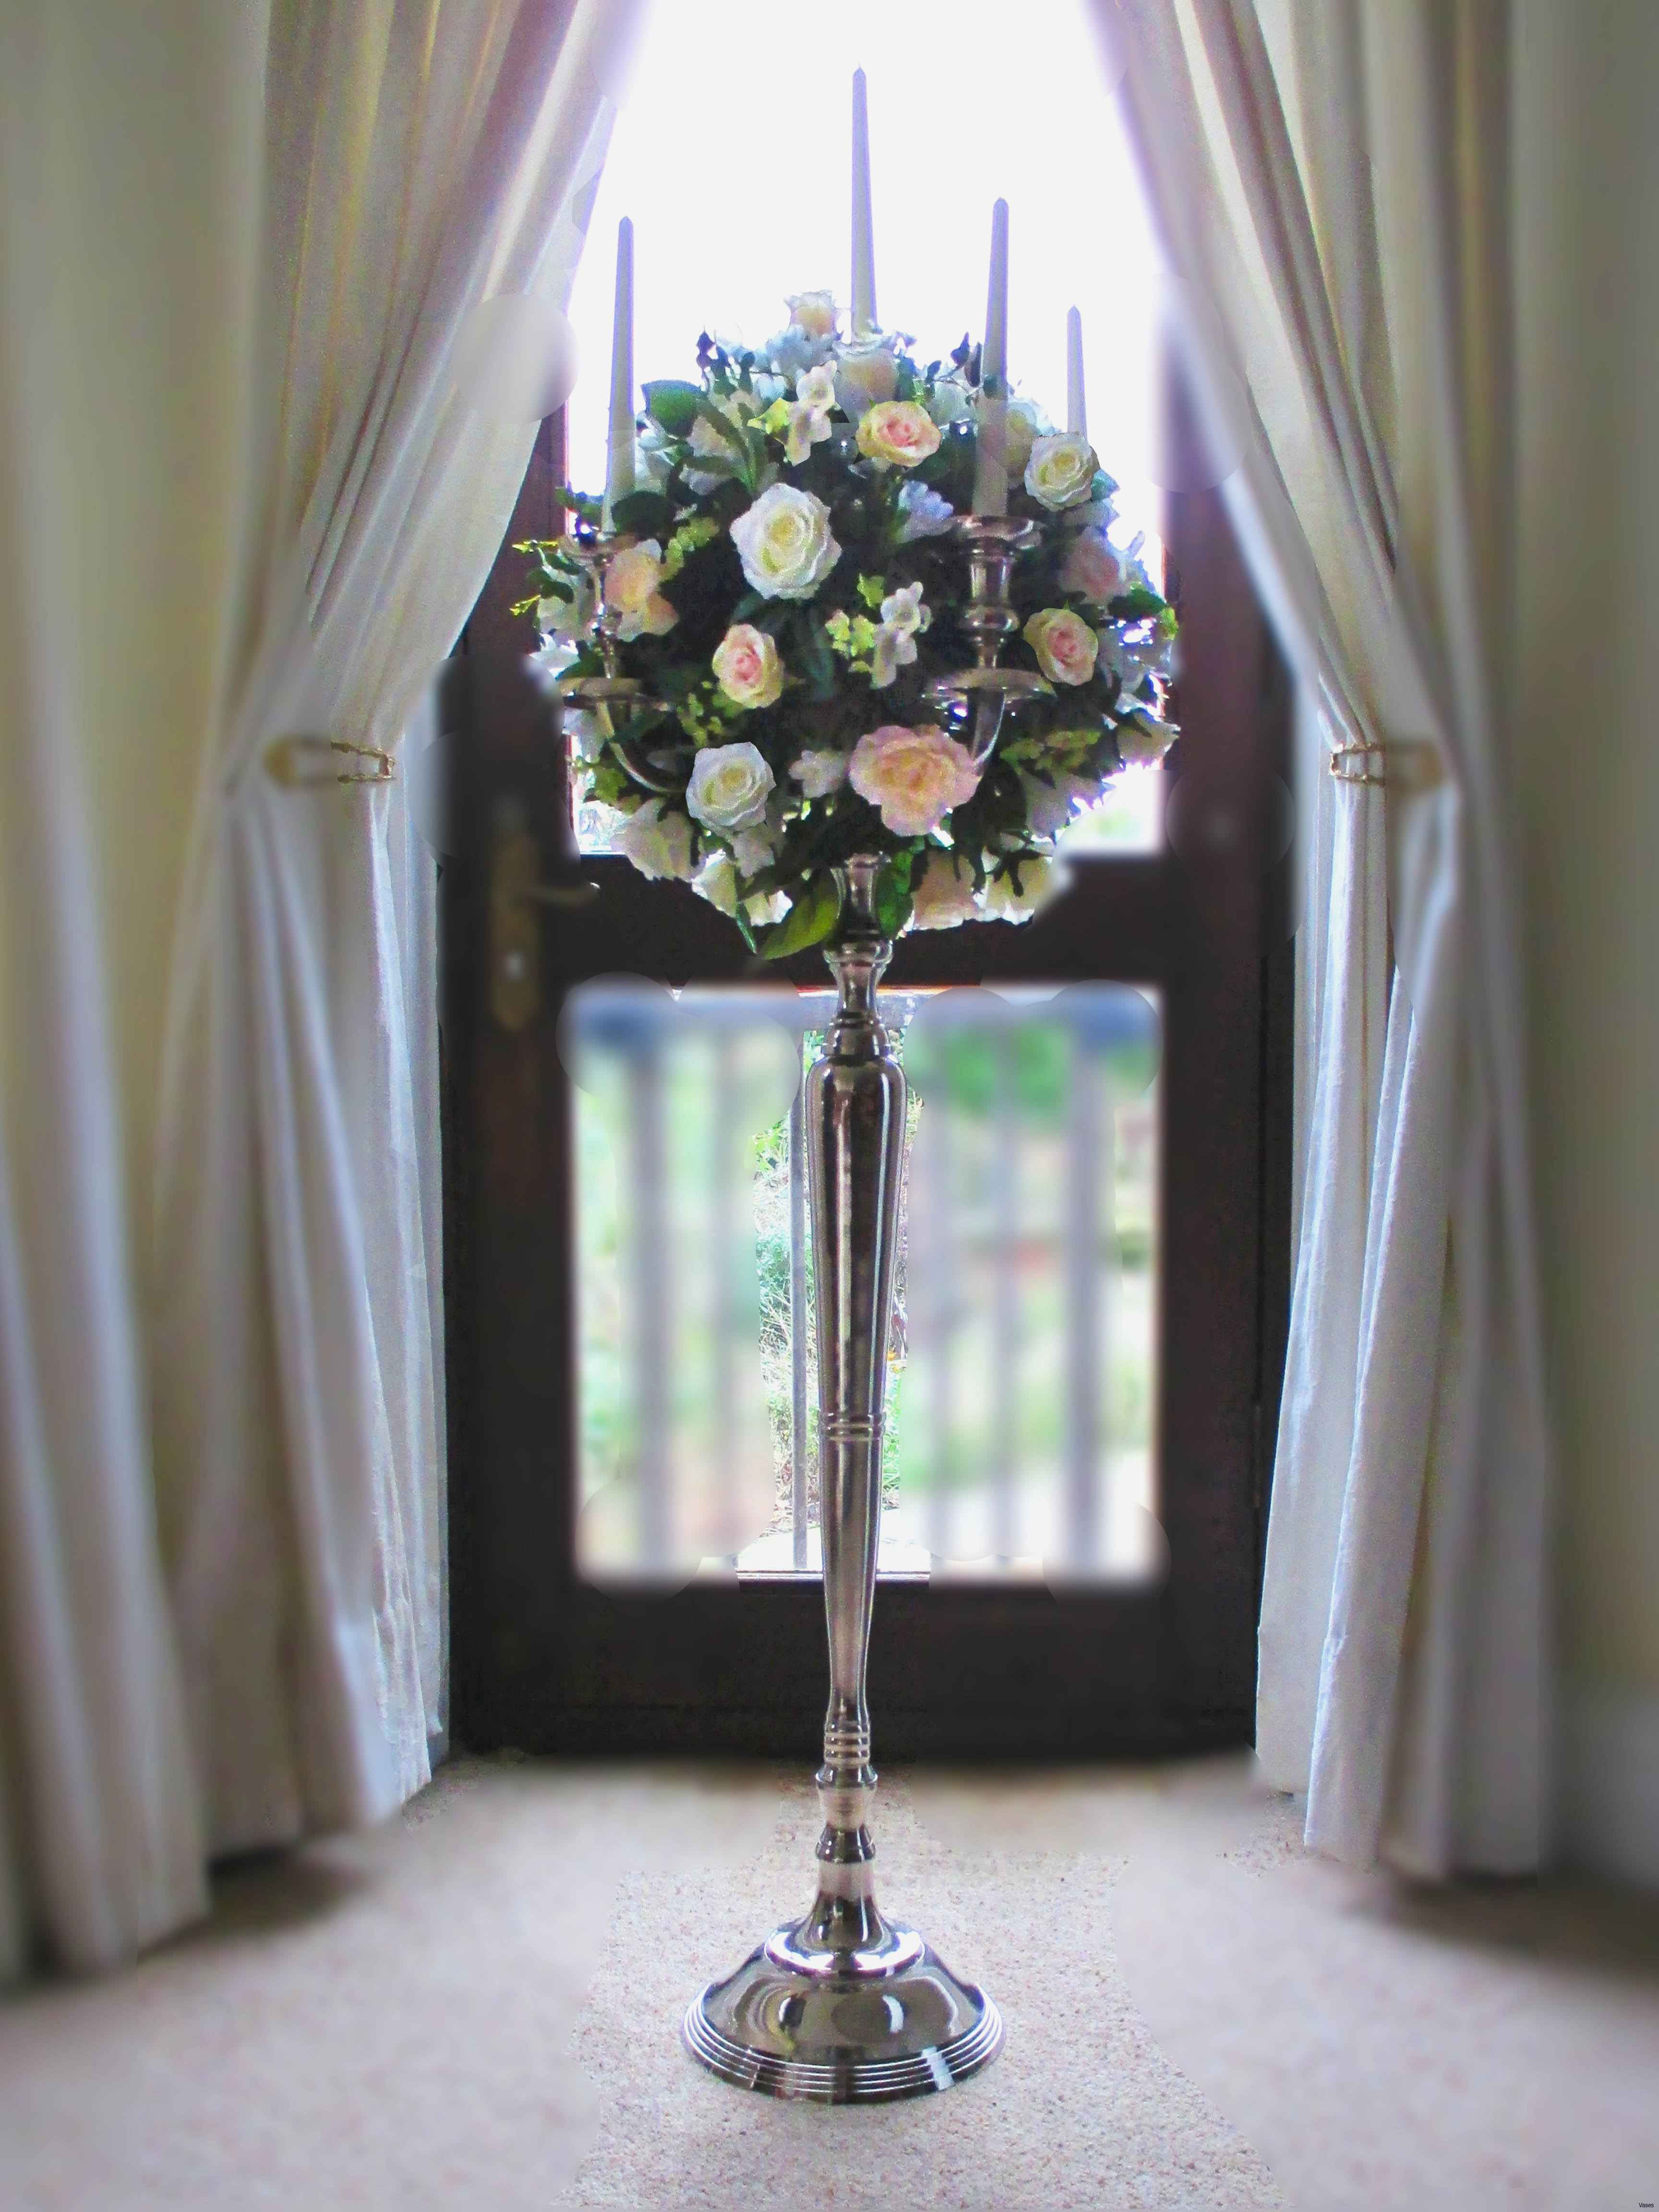 wholesale vases california of inspirational fall themed wedding favors wedding theme inside cheap wedding bouquets packages 5397h vases silver vase leeds i 0d inspiration outdoor fall wedding